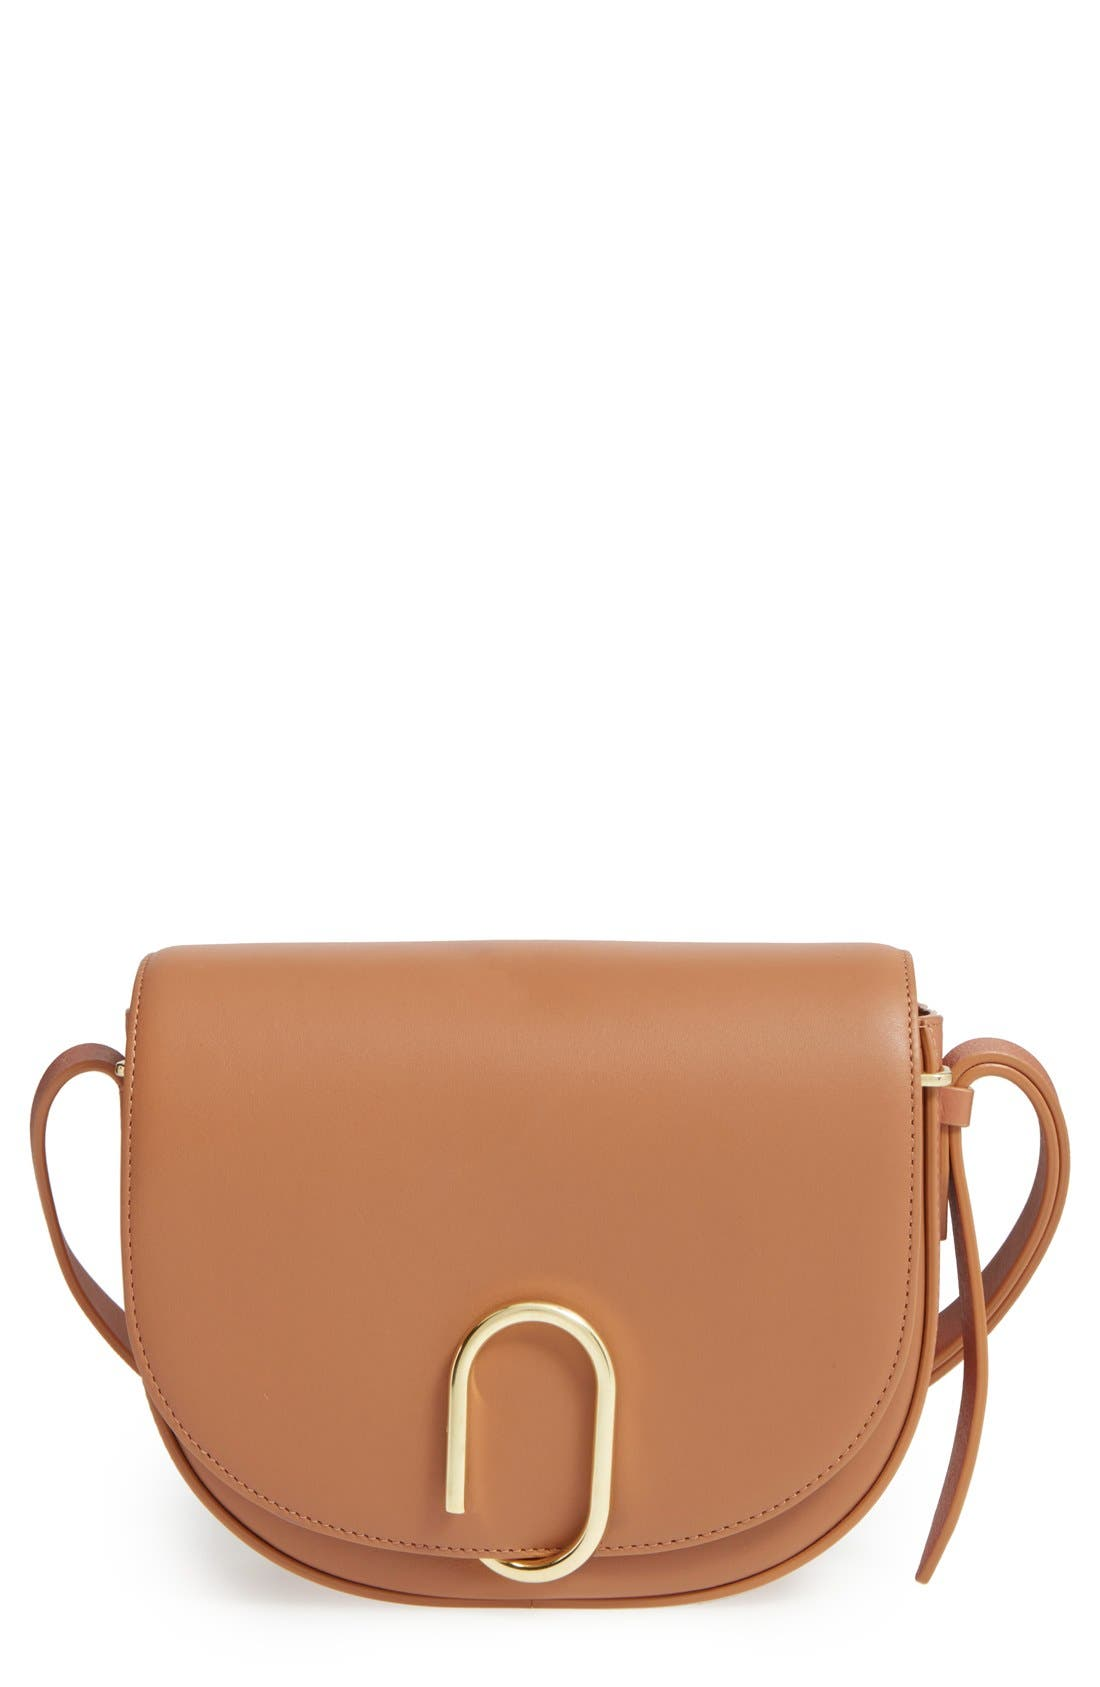 Alternate Image 1 Selected - 3.1 Phillip Lim Alix Leather Saddle Bag